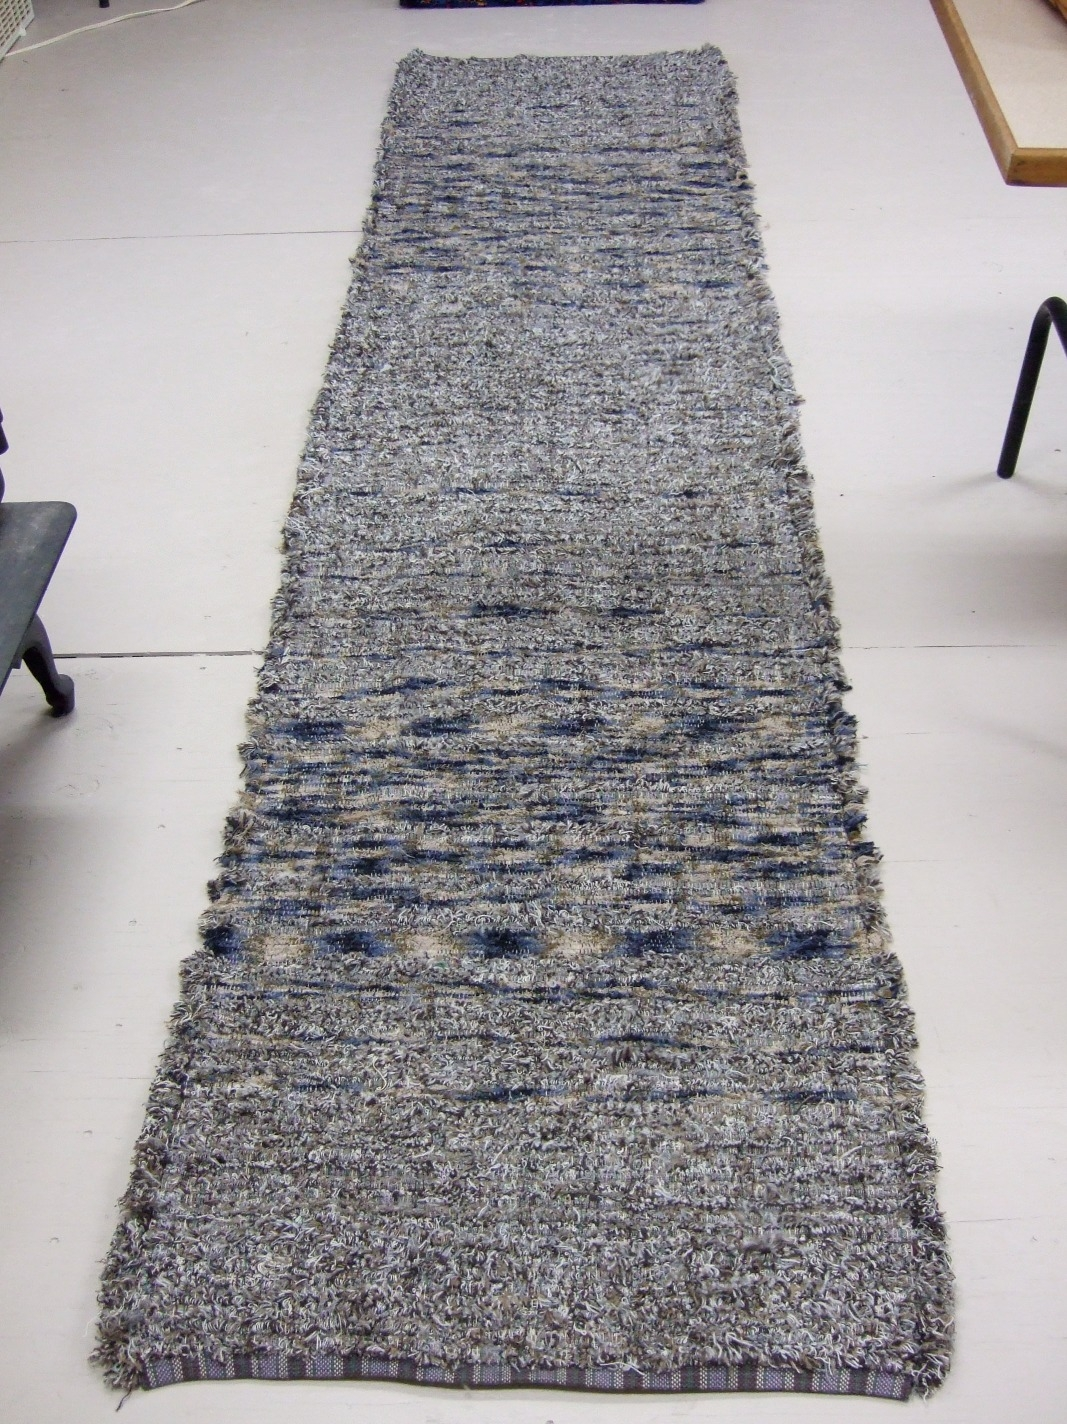 8 Ft X 10 Ft Non Slip Rug Pad Japd1a 76098 The Home Depot Pertaining To Non Slip Hallway Runners (View 1 of 20)